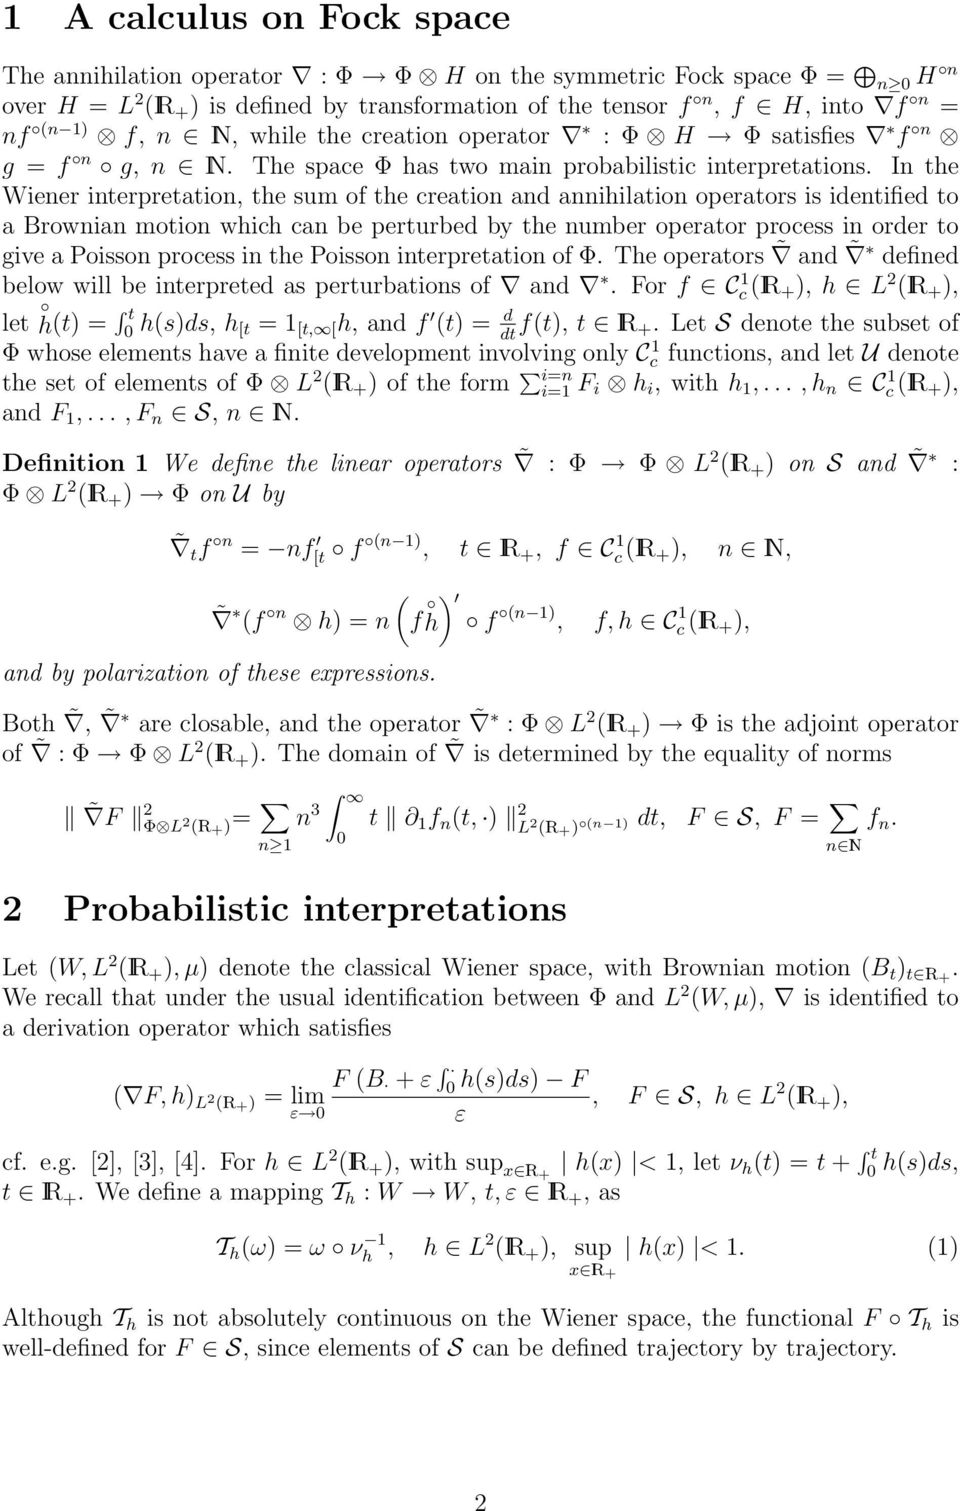 In the Wiener interpretation, the sum of the creation and annihilation operators is identified to a Brownian motion which can be perturbed by the number operator process in order to give a Poisson